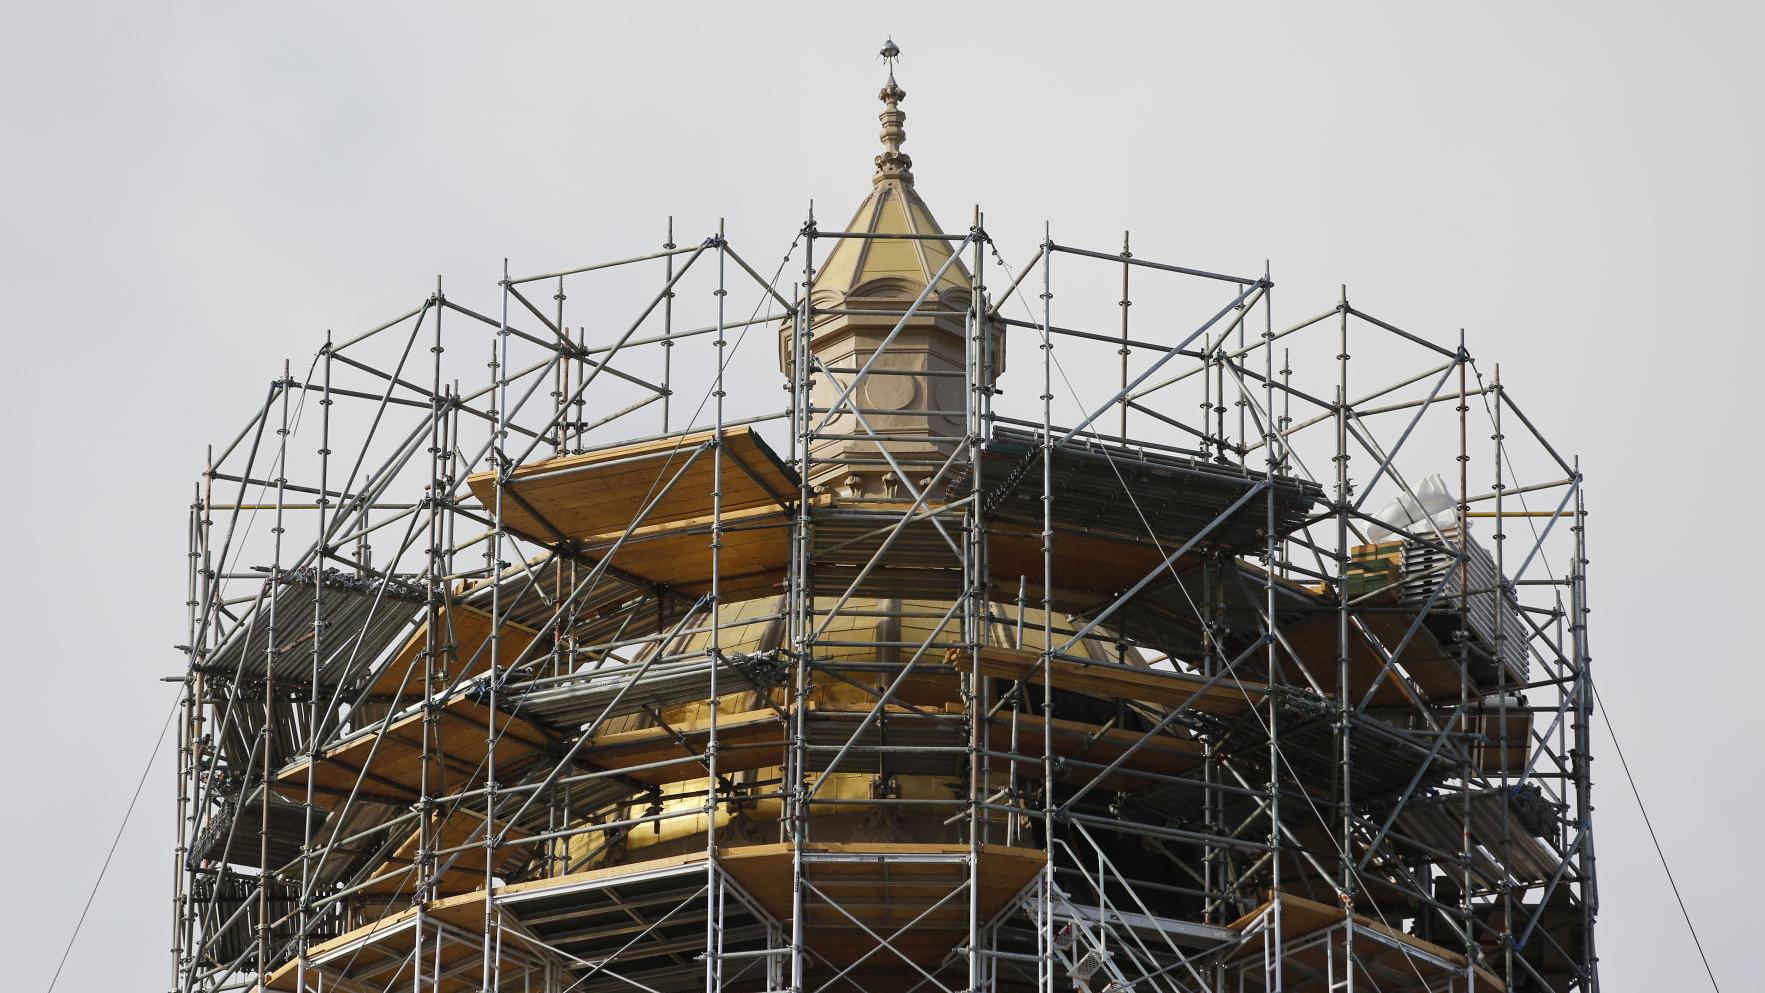 In strong rebuke, Wyoming Supreme Court finds Capitol restoration laws largely unconstitutional